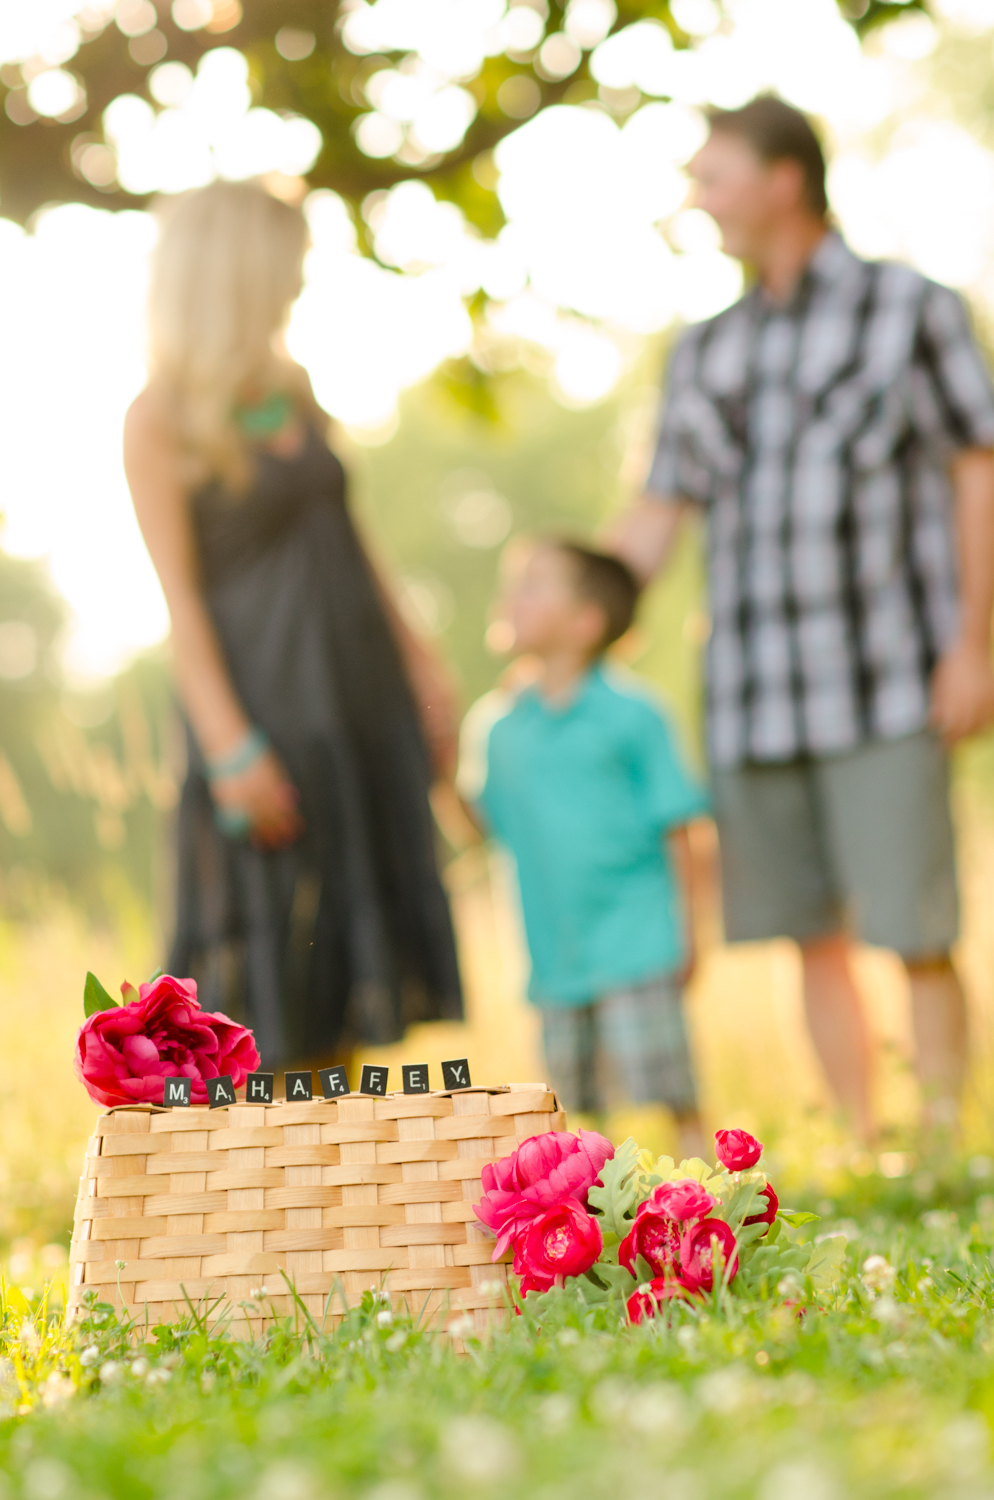 immerse photography-60.jpg